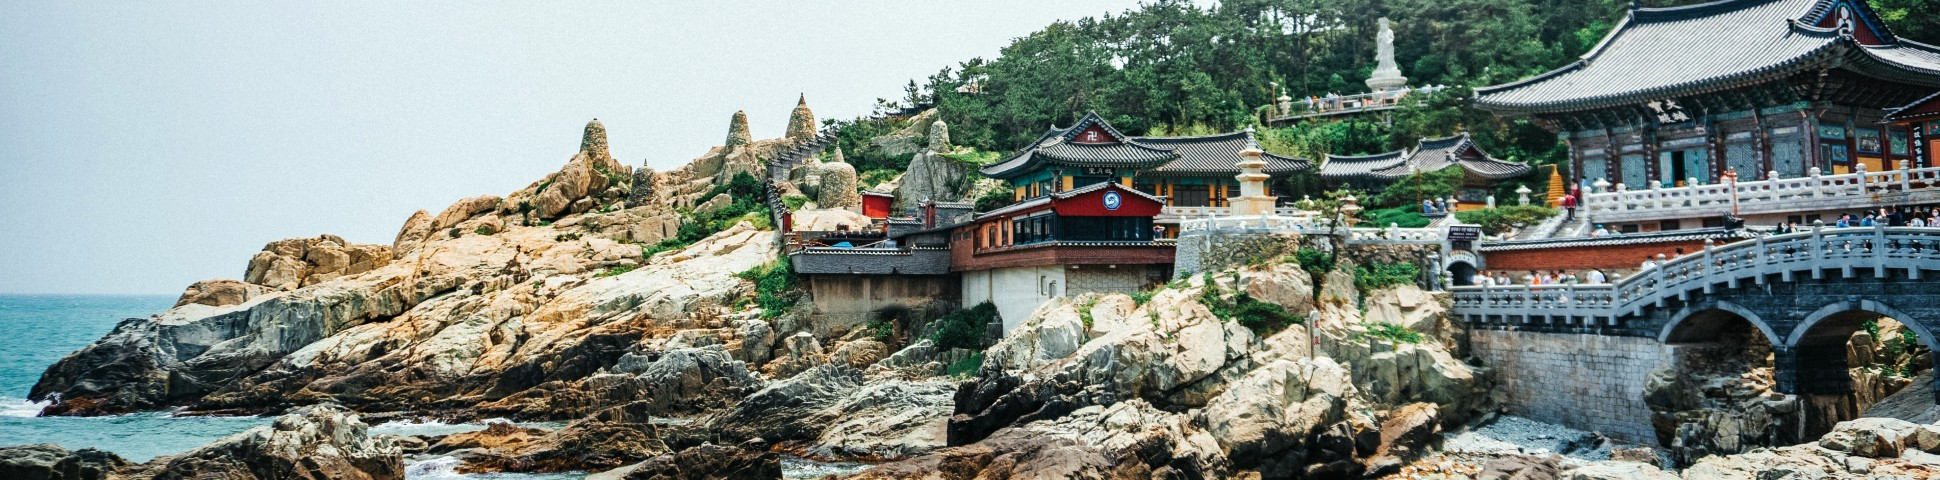 Beautiful shore in South Korea